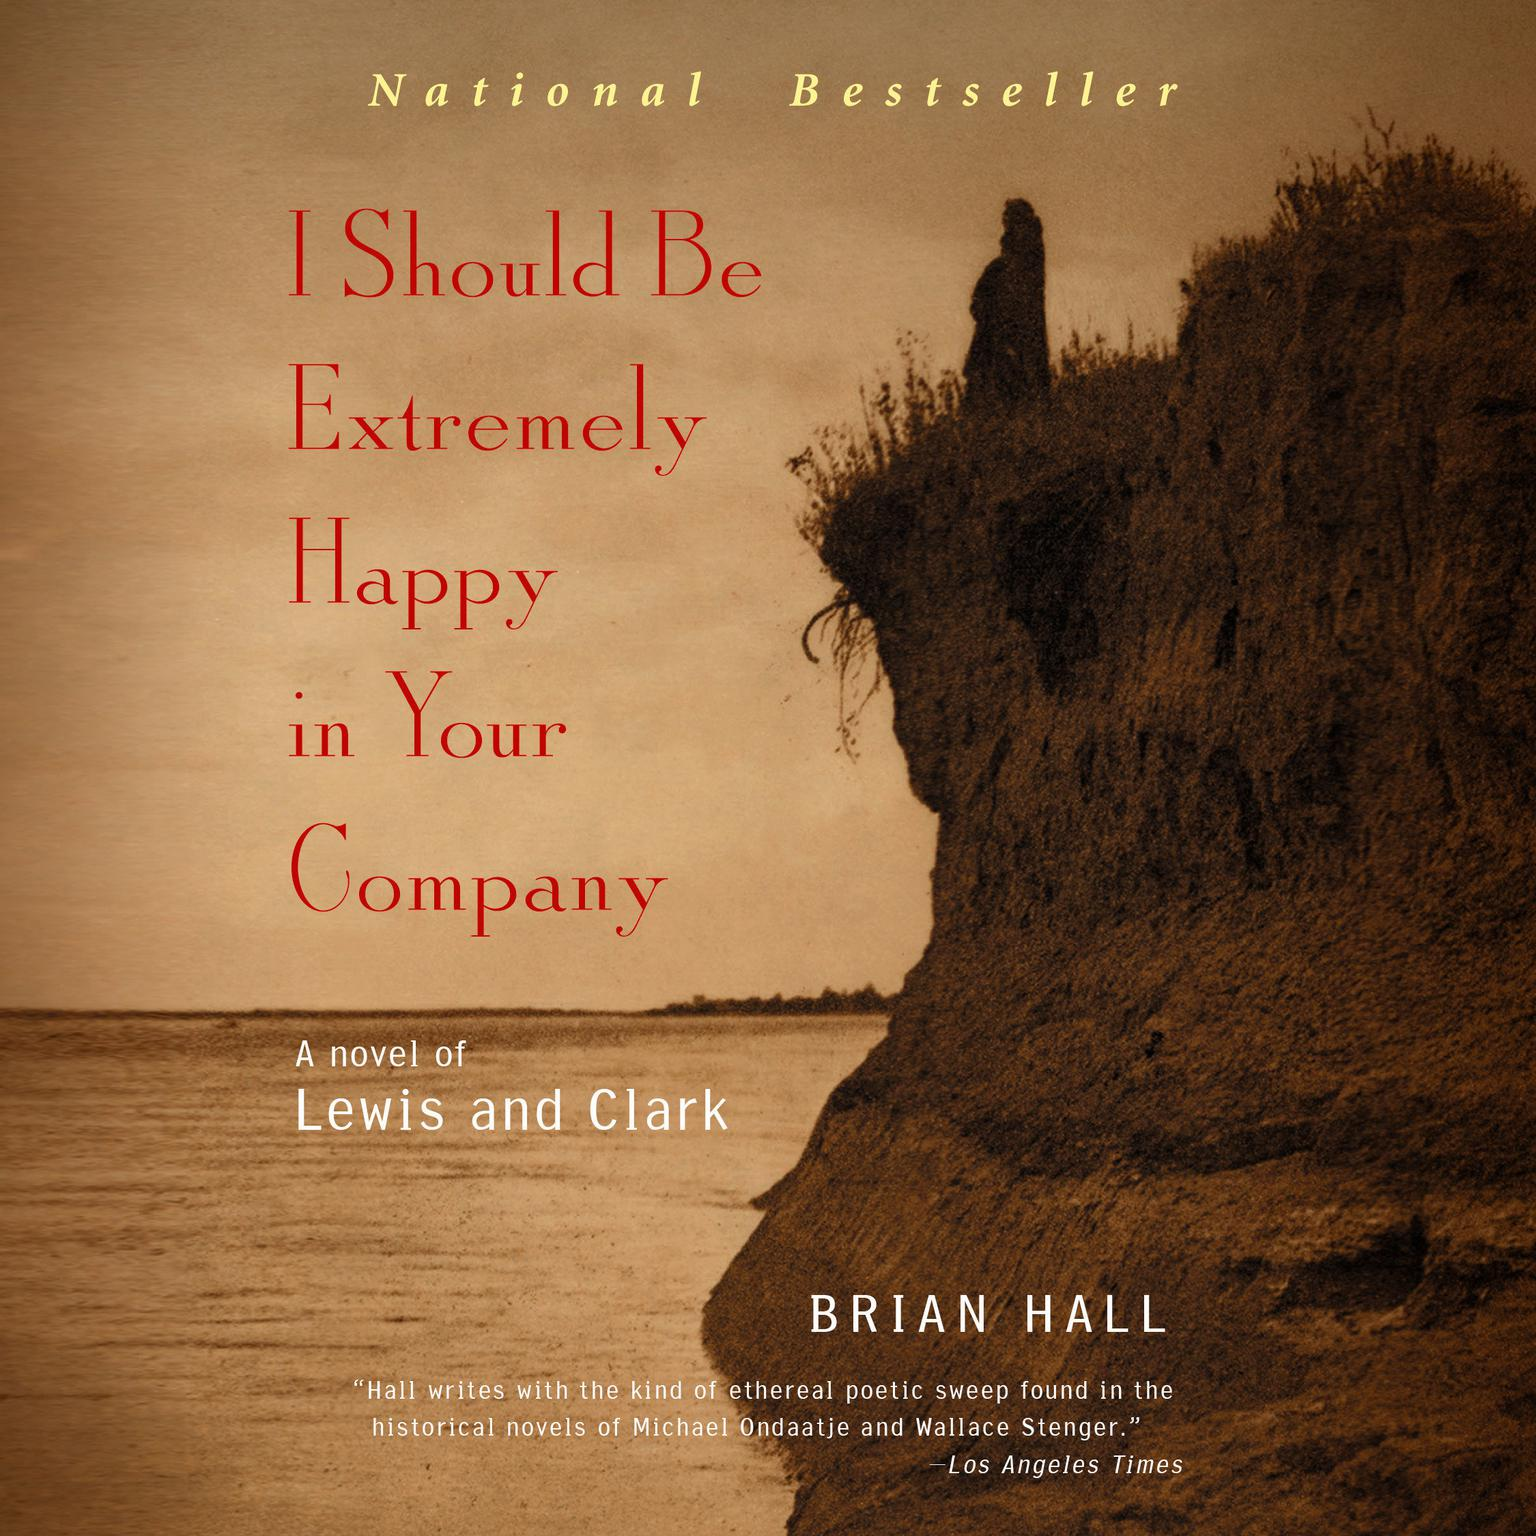 I Should Be Extremely Happy in Your Company: A Novel of Lewis and Clark Audiobook, by Brian Hall